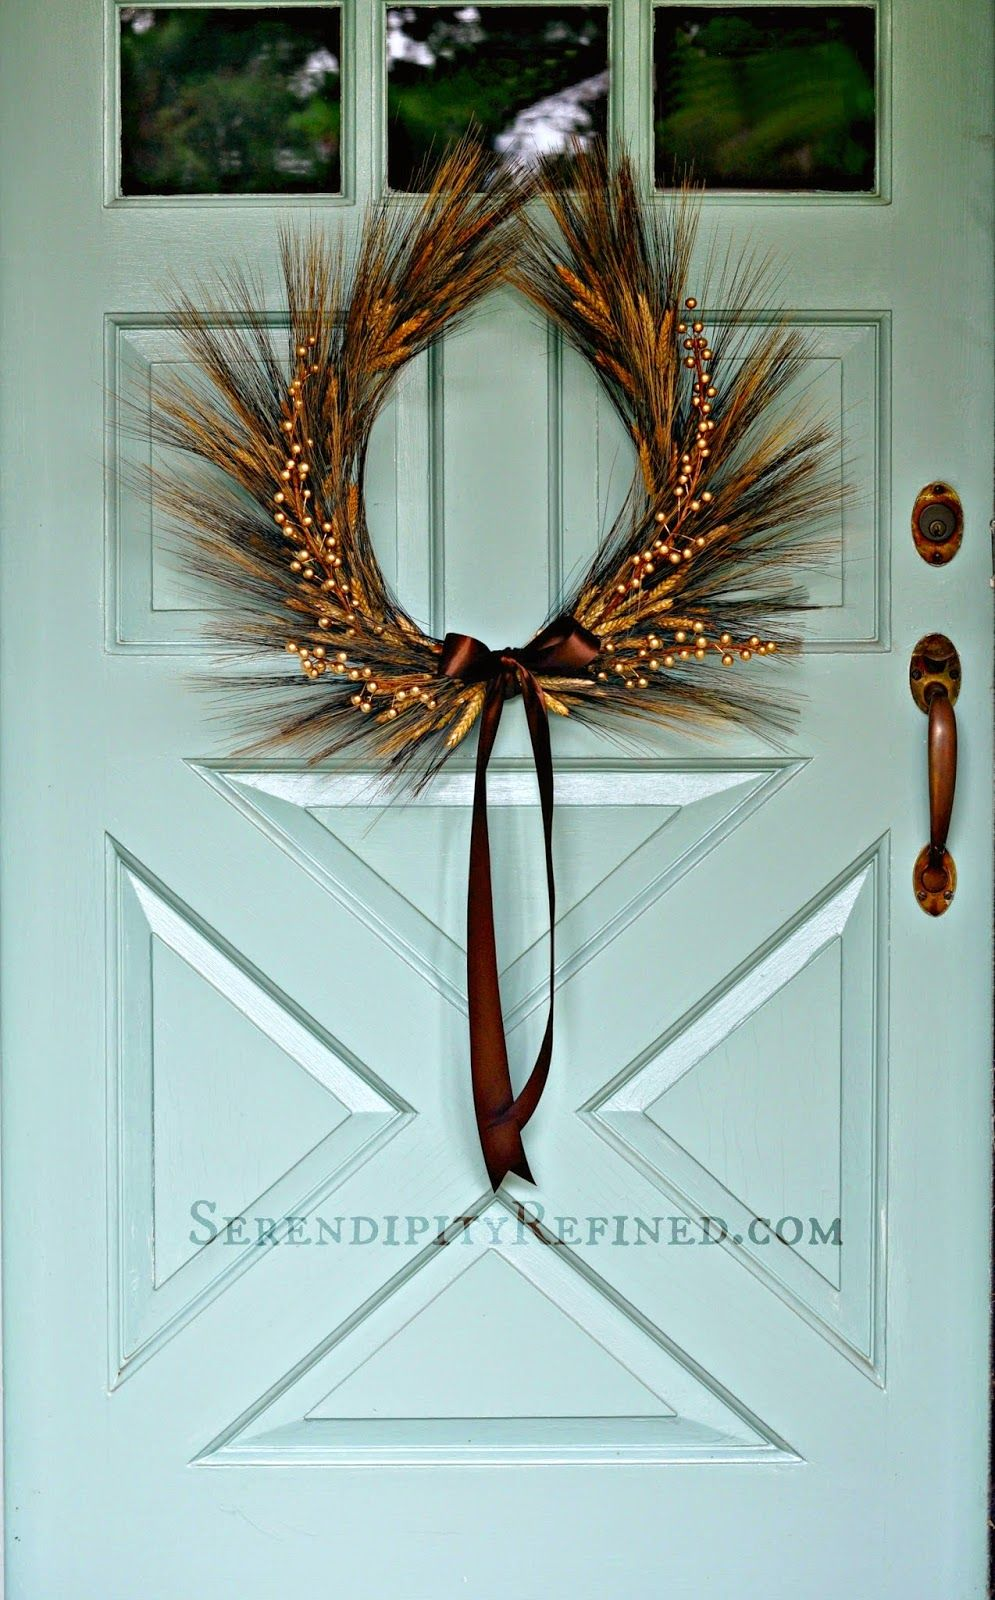 Serendipity Refined: DIY Horseshoe Shaped Natural Wheat Fall Wreath